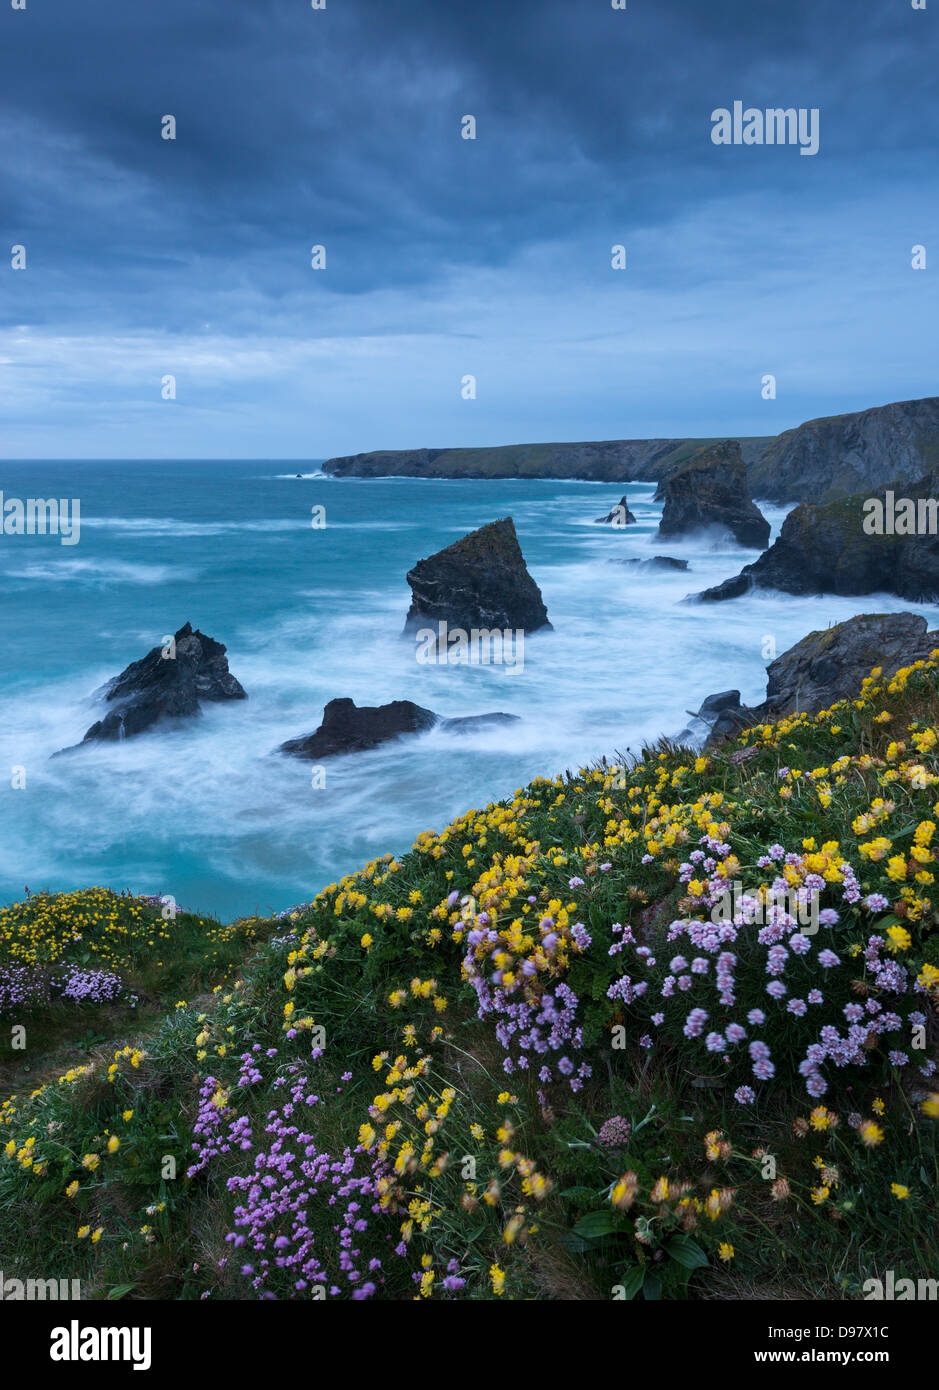 Spring wildflowers growing on the clifftops at Bedruthan Steps, Cornwall, England. May 2013. - Stock Image